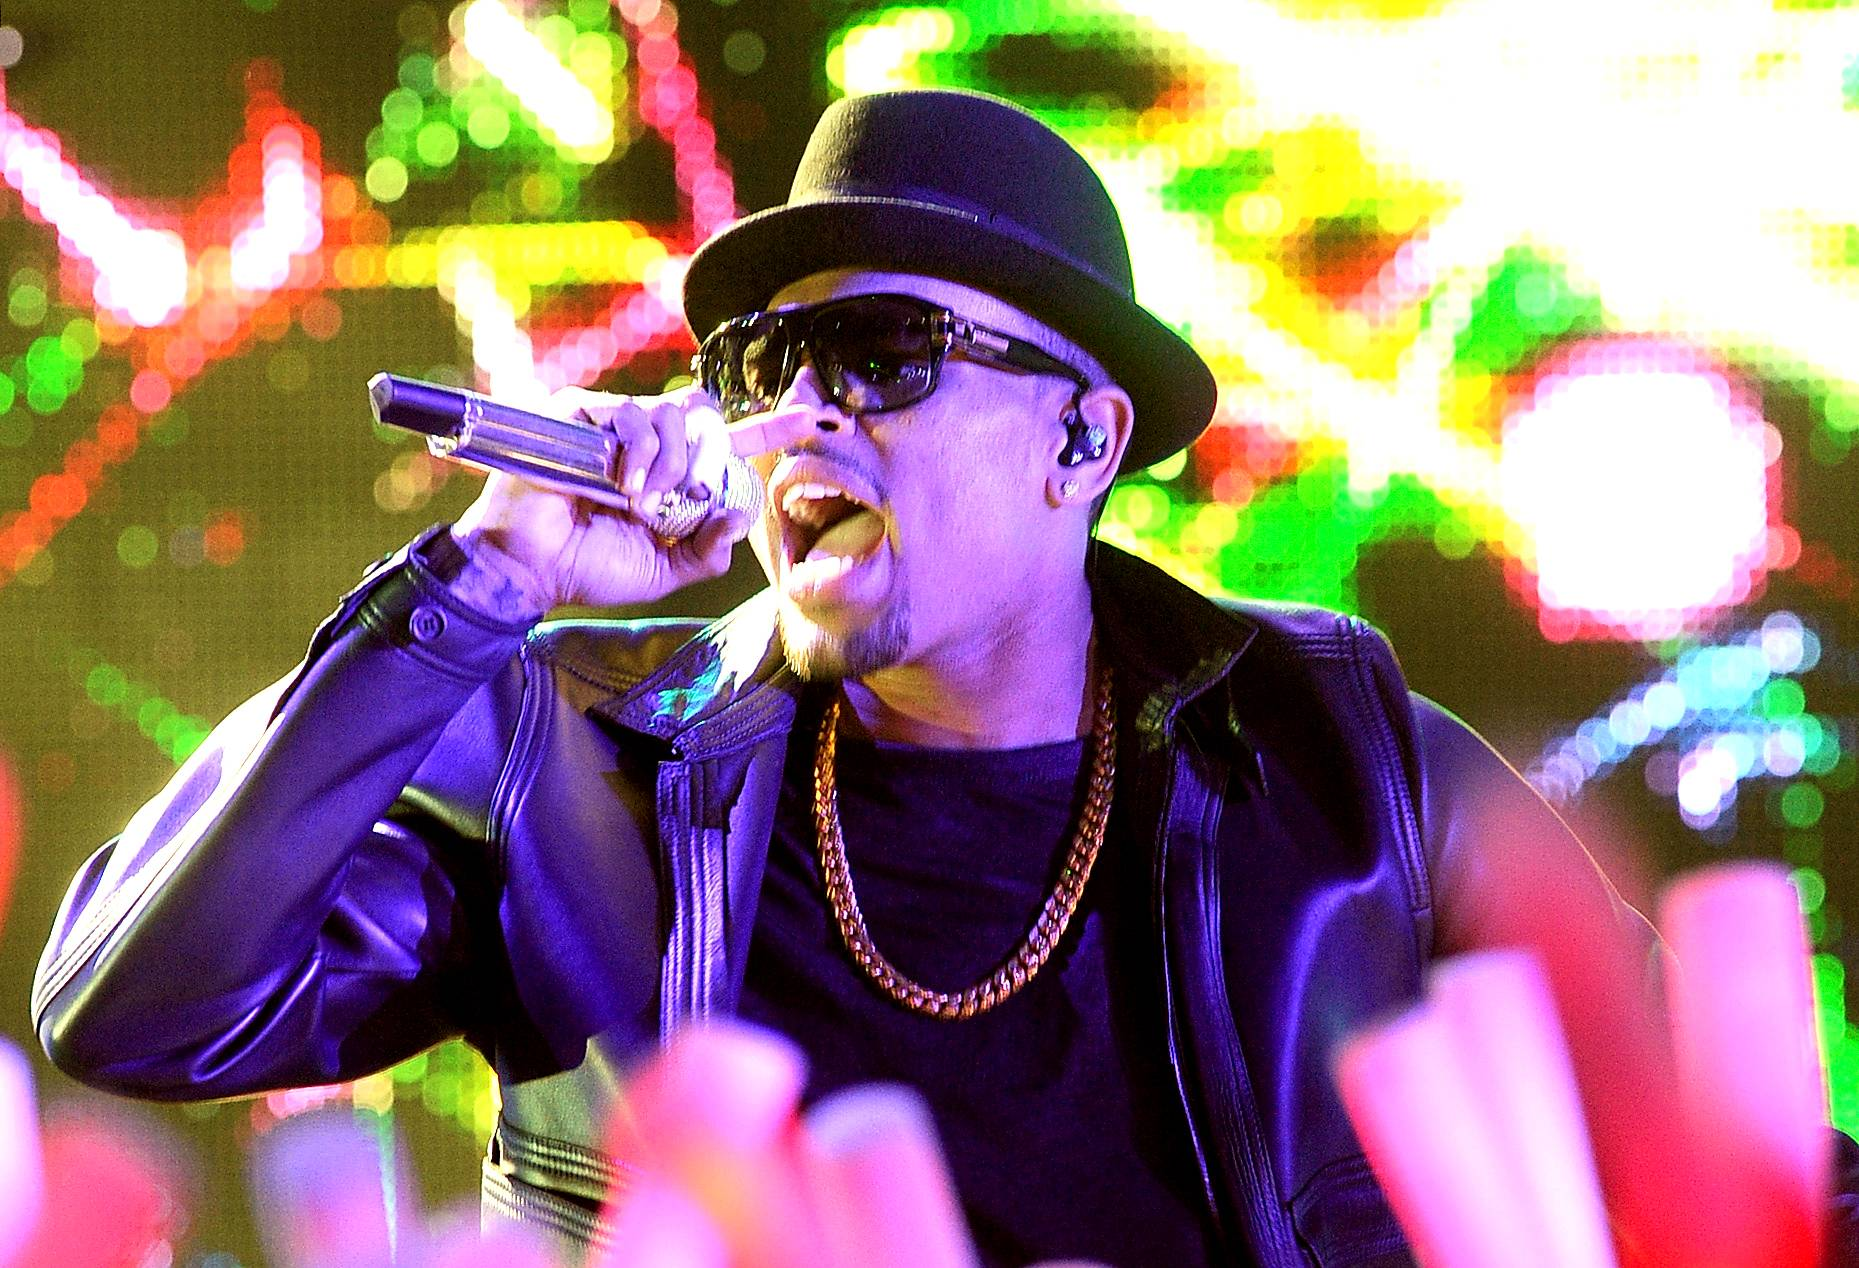 """Chris Brown (@chrisbrown) - TWEET: """"One of my sketches!""""   Chris Brown tweets almost nothing but Instagram photos now, the most interesting of which, this week, turned out to be a number of his own personal drawings.(Photo: Jason Merritt/Getty Images)"""